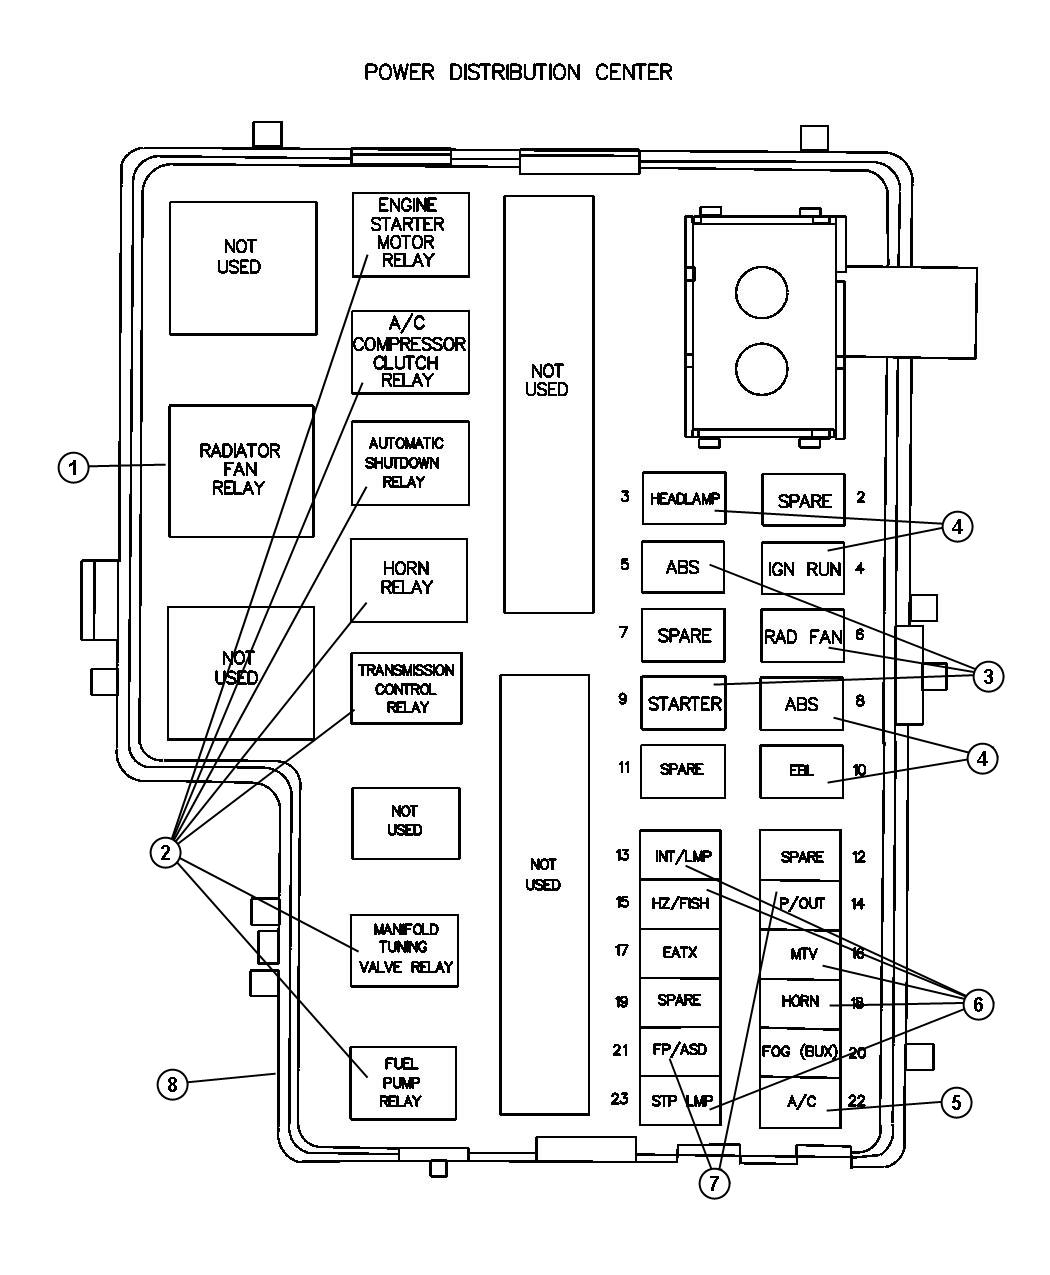 door on 2008 dodge avenger wiring diagram with 95 Dodge Avenger Fuse Diagram on 2000 Grand Marquis Heater Valve Location 168135 together with 6gpm3 Dodge Grand Caravan Le Need Change Blend Door Actuator also Dodge Nitro Wiring Diagrams moreover Dodge Nitro Heater Core Diagram likewise 95 Dodge Avenger Fuse Diagram.